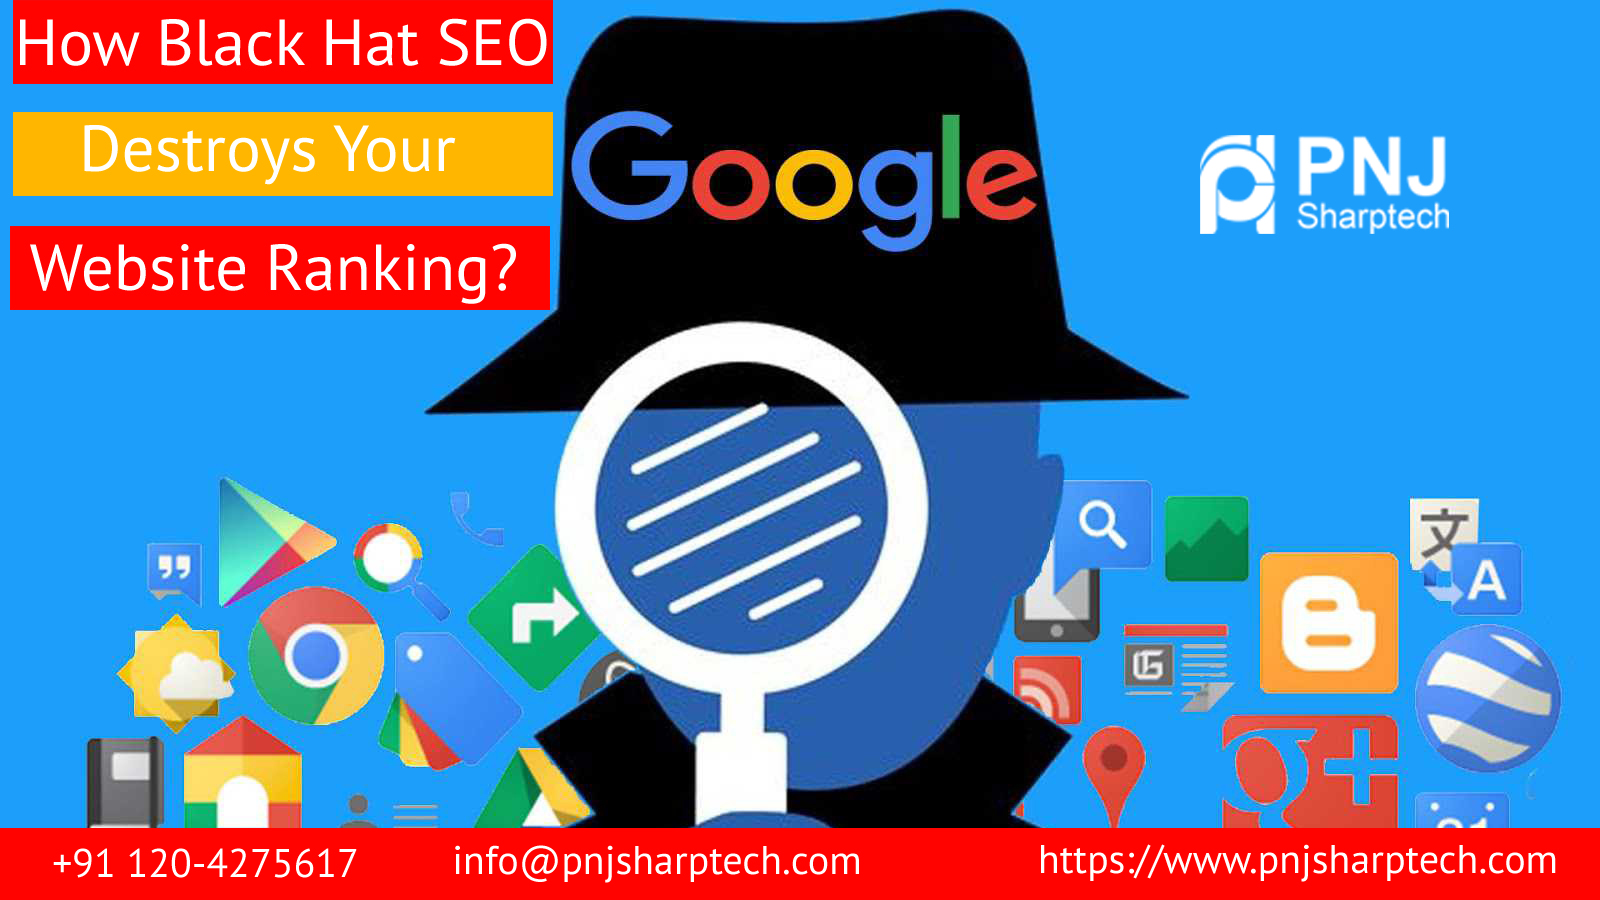 Black Hat SEO Destroys Your Website Ranking